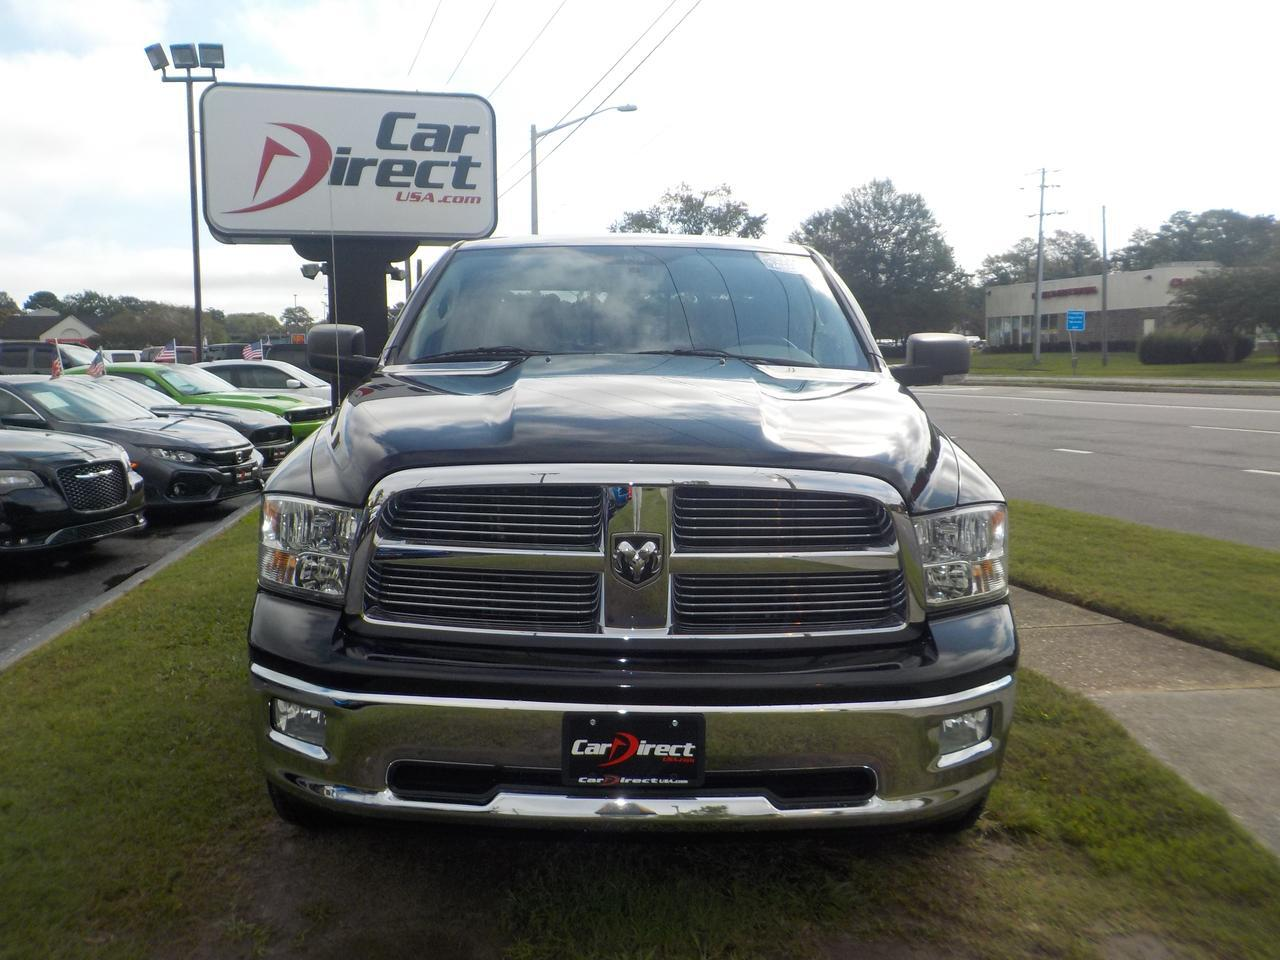 2011 RAM 1500 CREW CAB BIG HORN 4X4, 5.7L HEMI, RUNNING BOARDS, TOW PACKAGE, TONNEAU COVER, CHROME WHEELS!! Virginia Beach VA